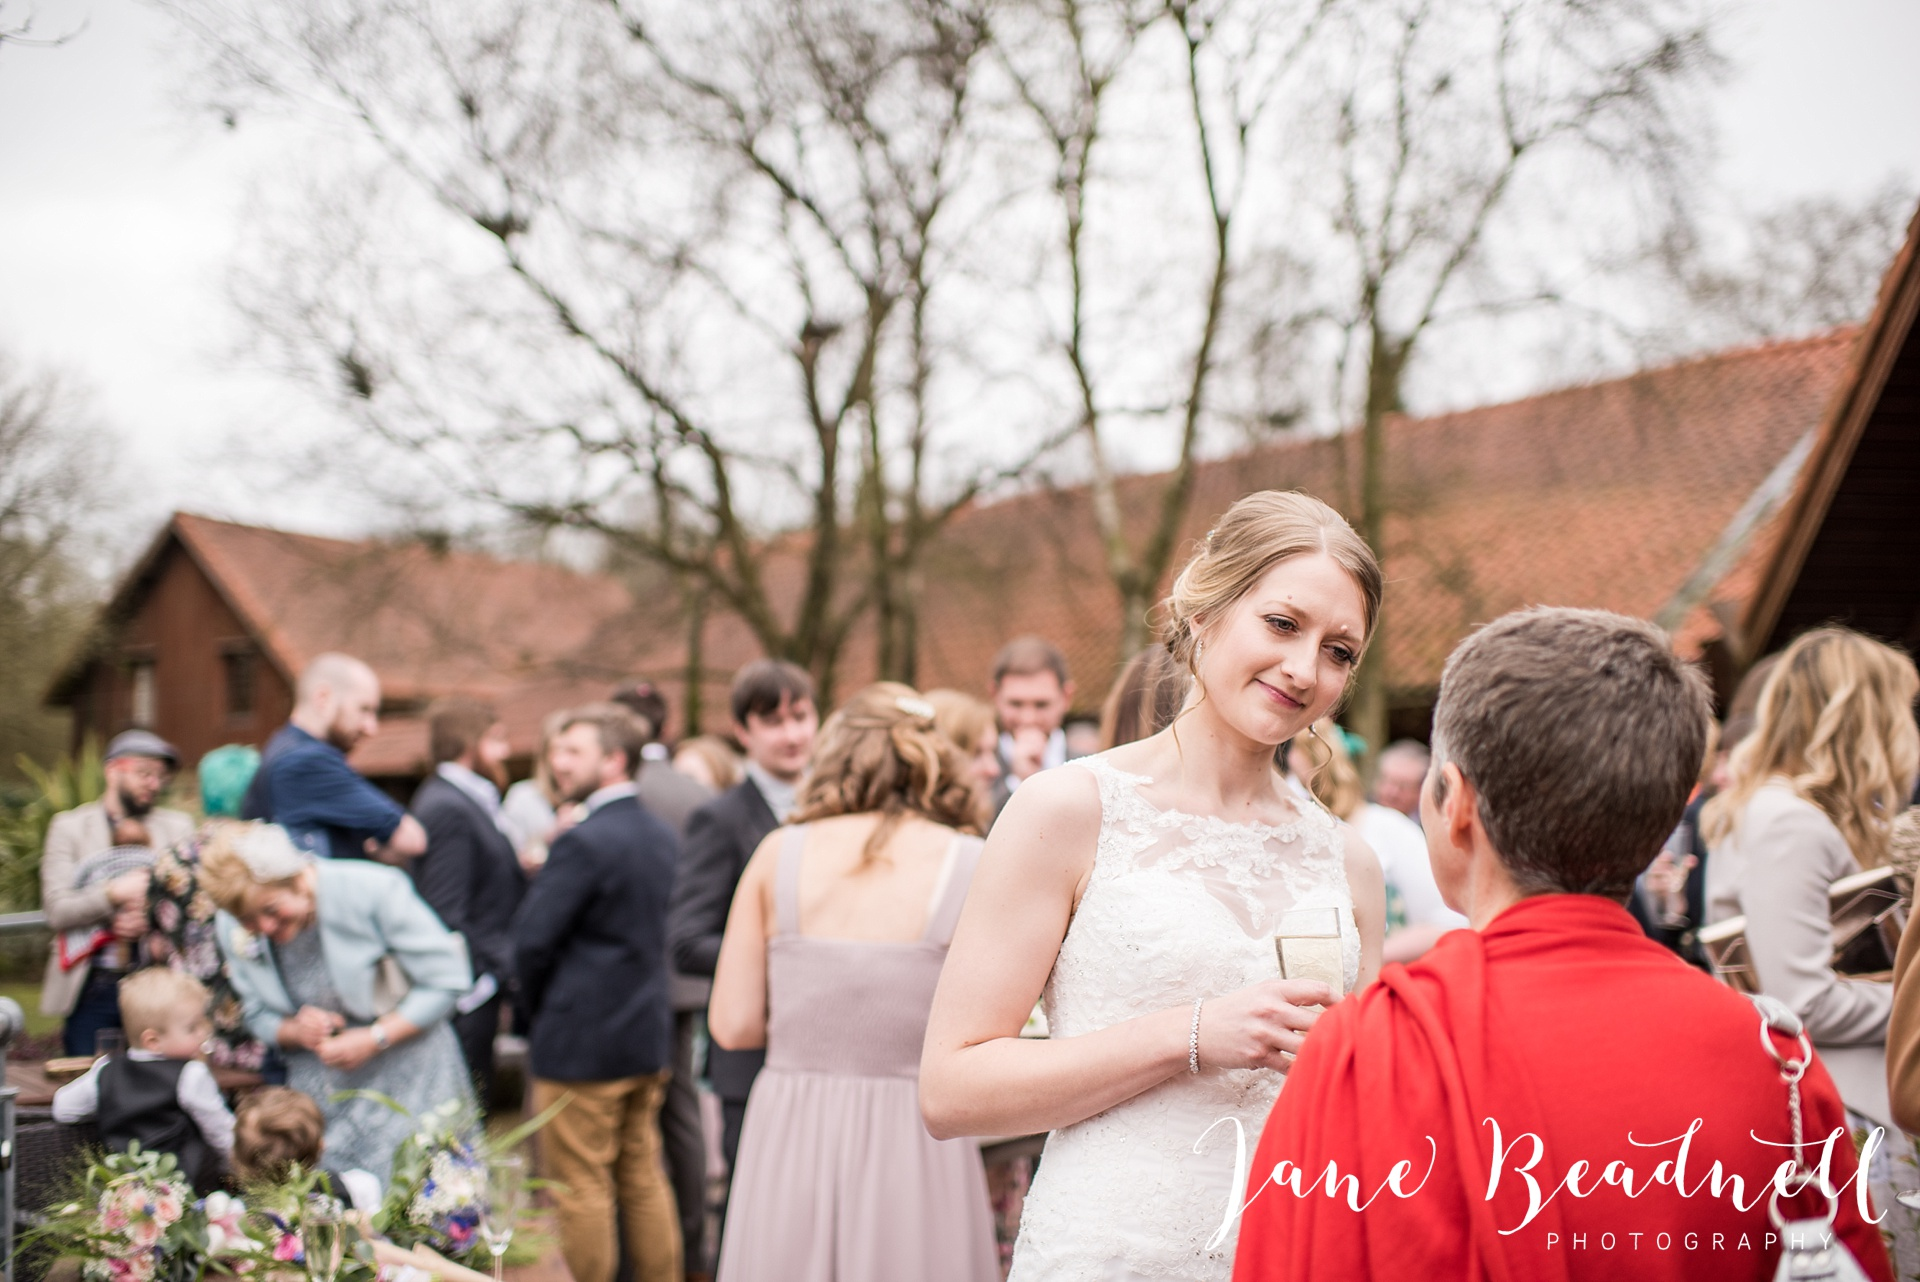 Otley Chevin Lodge wedding photography by Jane Beadnell Photography Leeds_0069